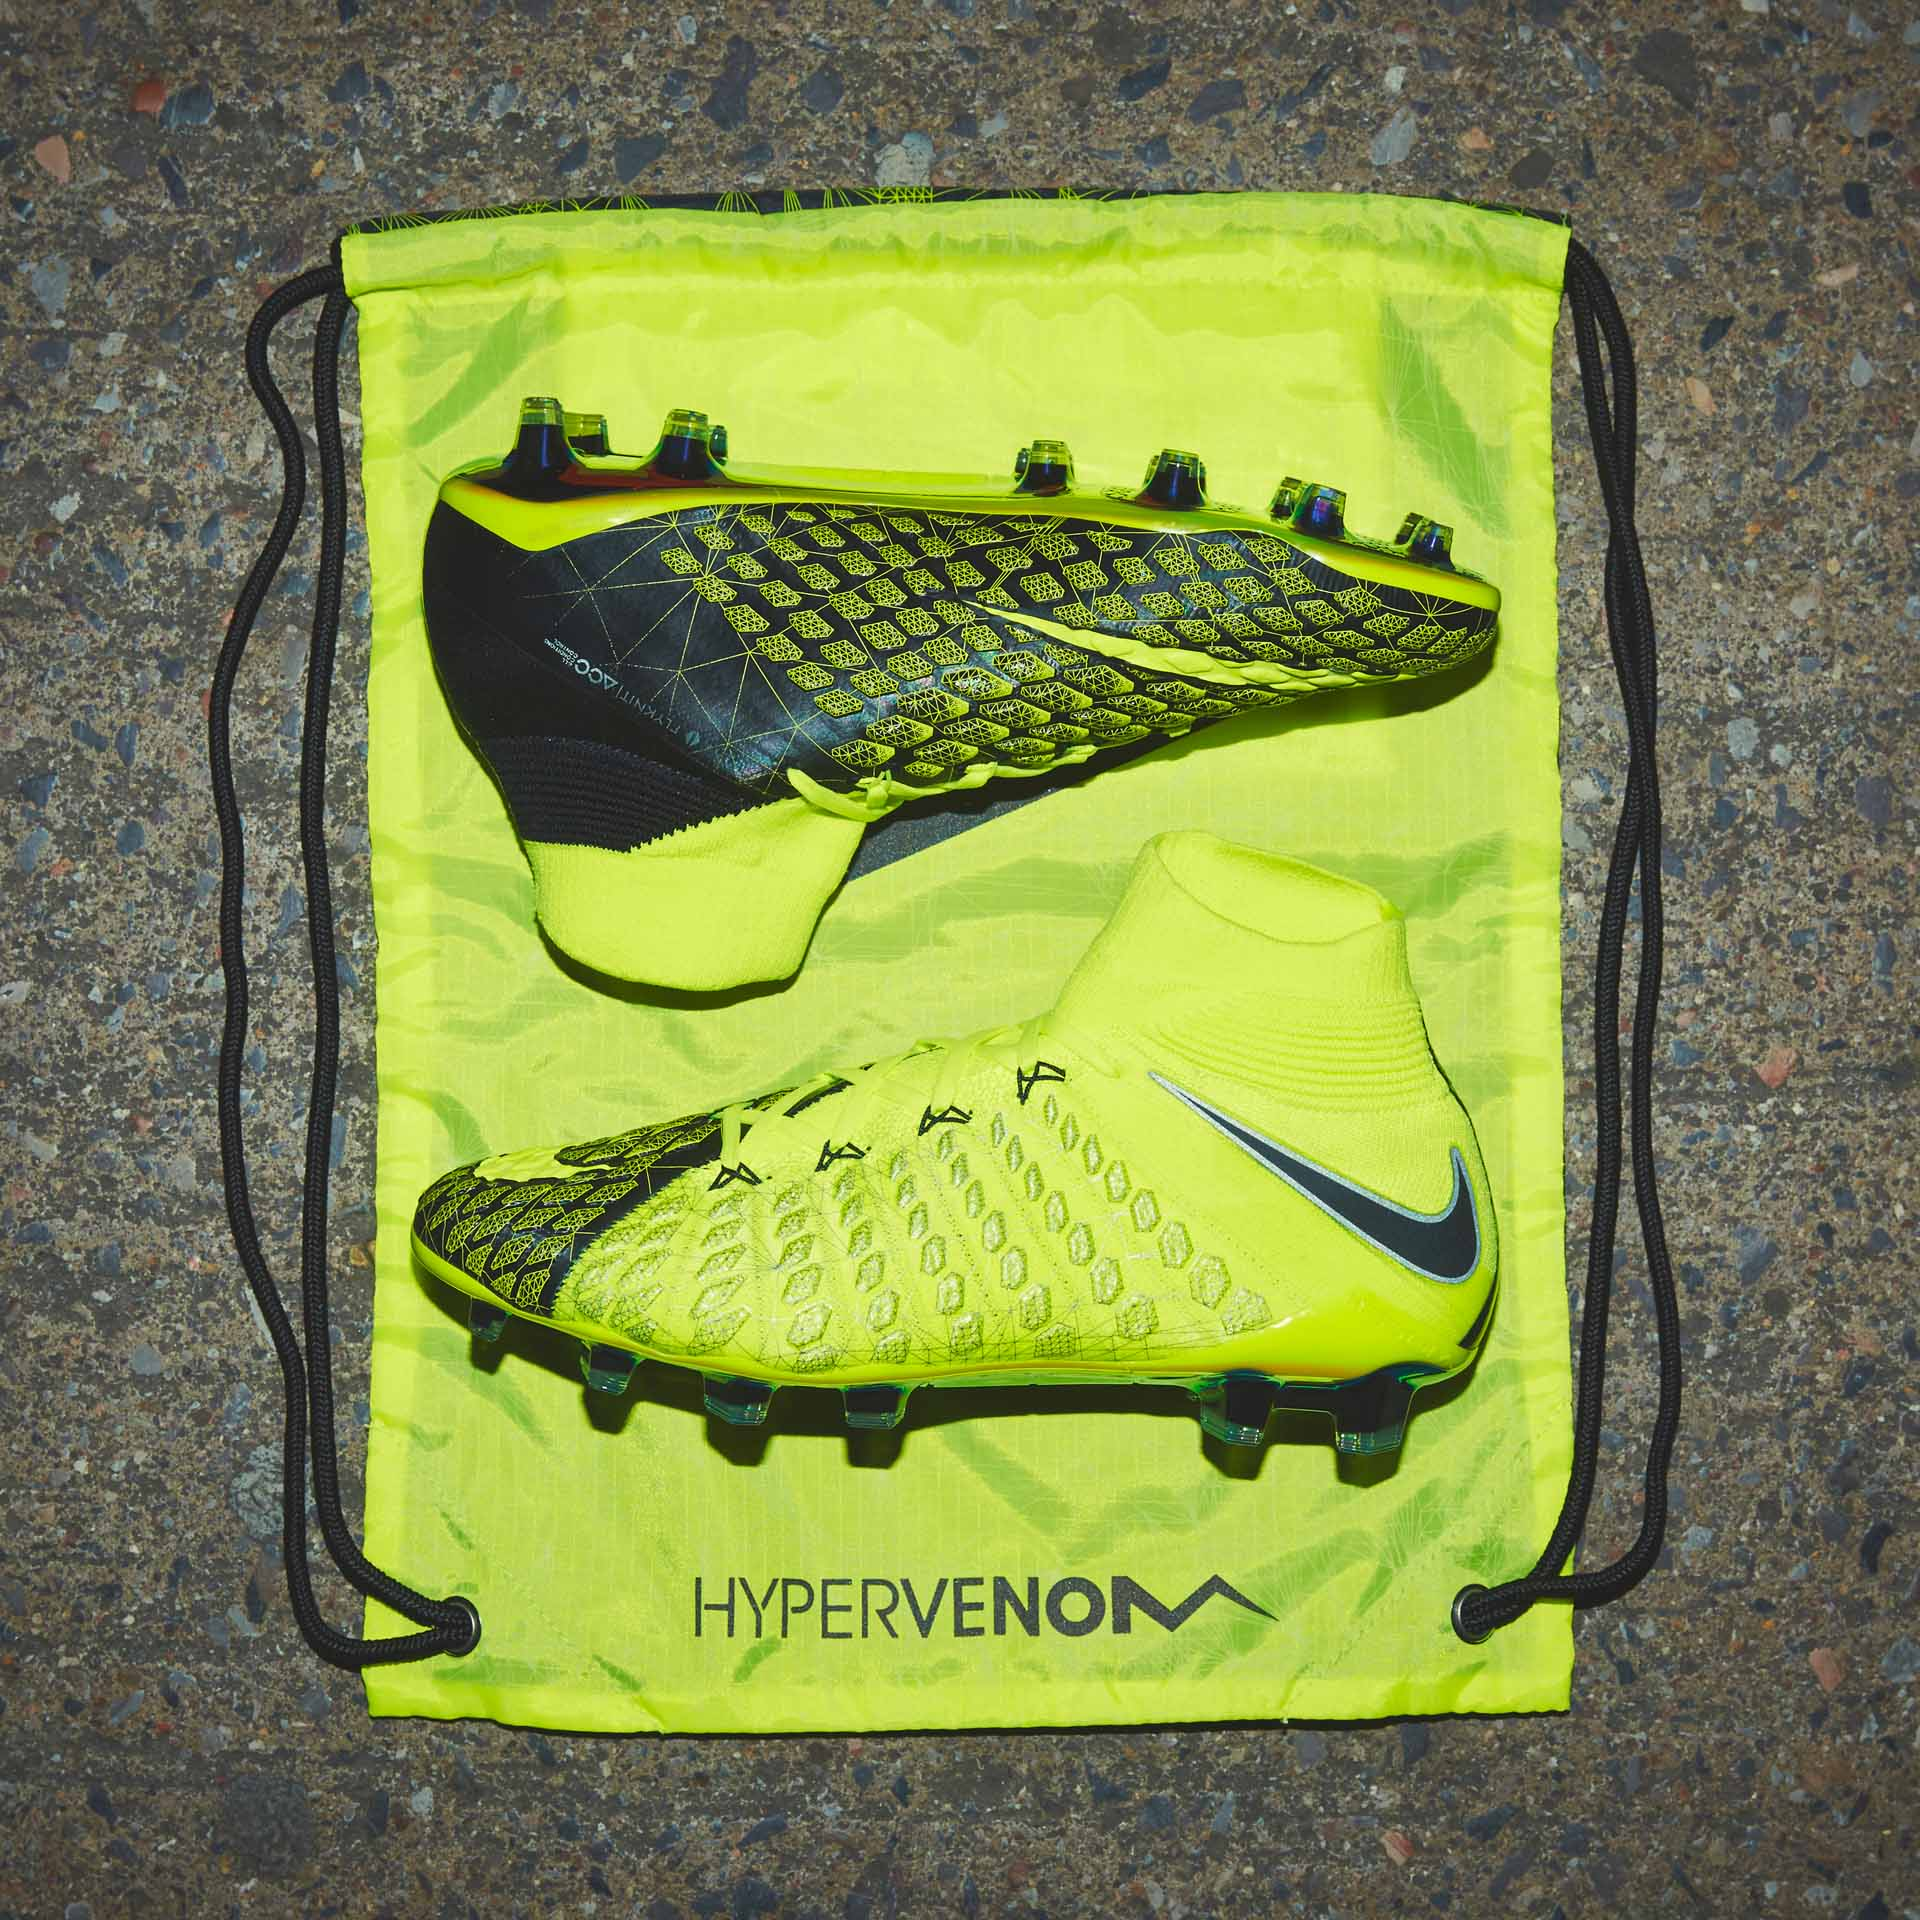 ce498b93f40 Nike x EA Sports Hypervenom 3 Football Boots - SoccerBible